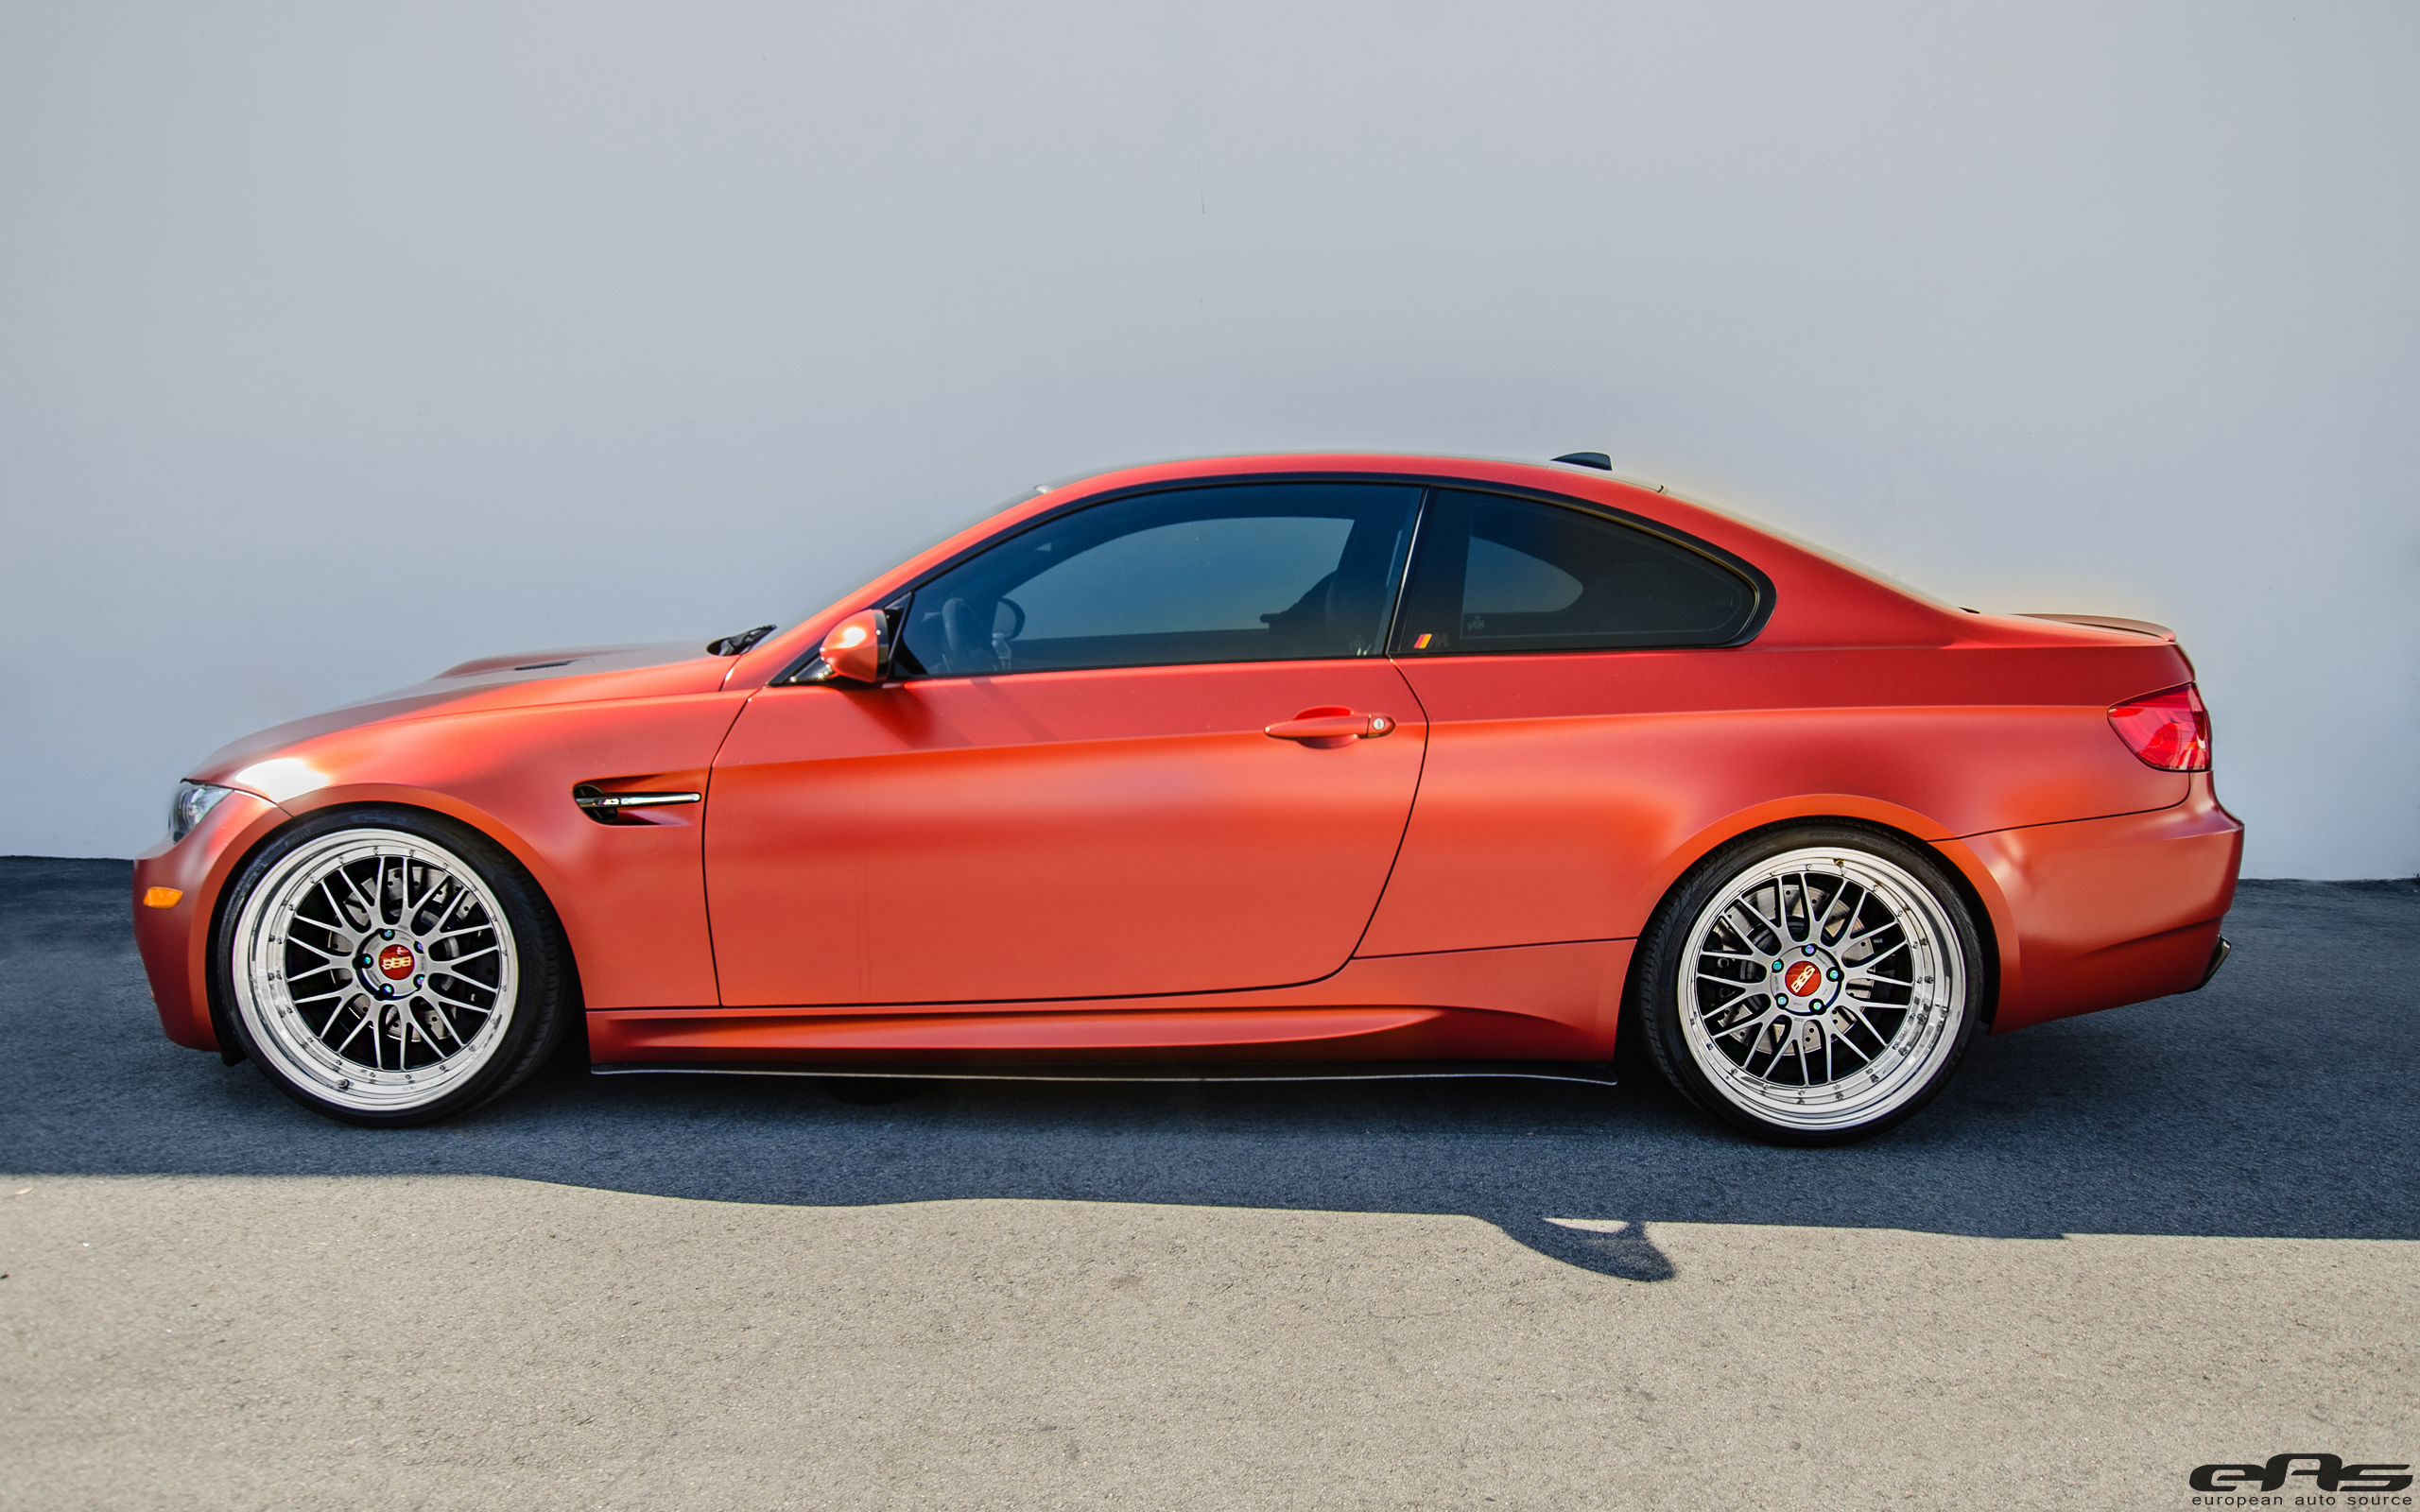 Frozen Red Metallic E92 M3 For The Show Bmw Performance Parts Services